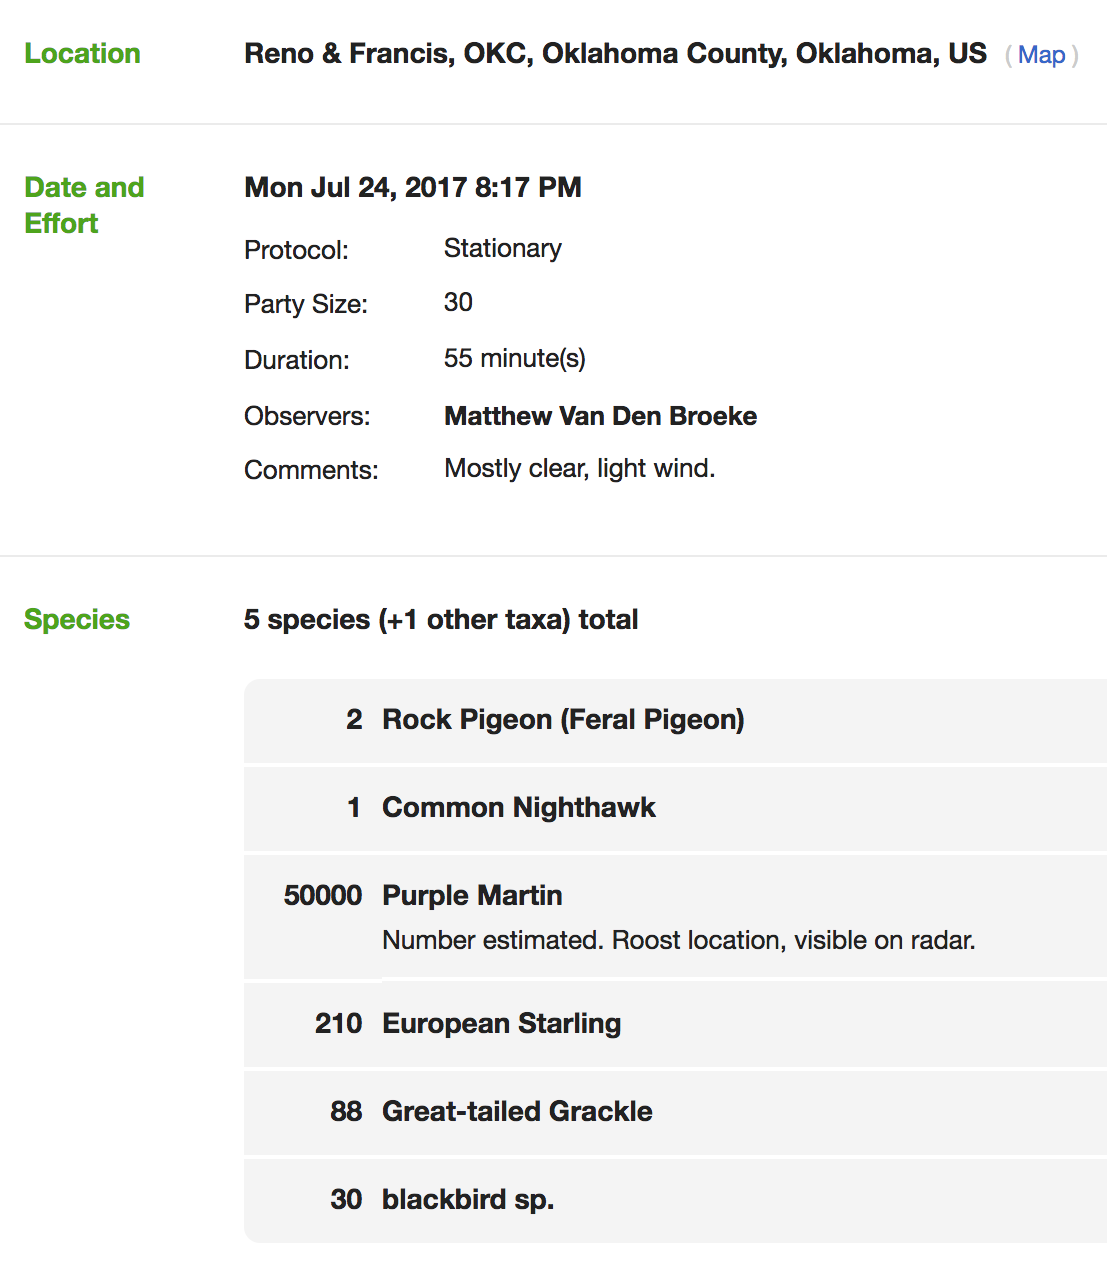 eBird checklist screen grab